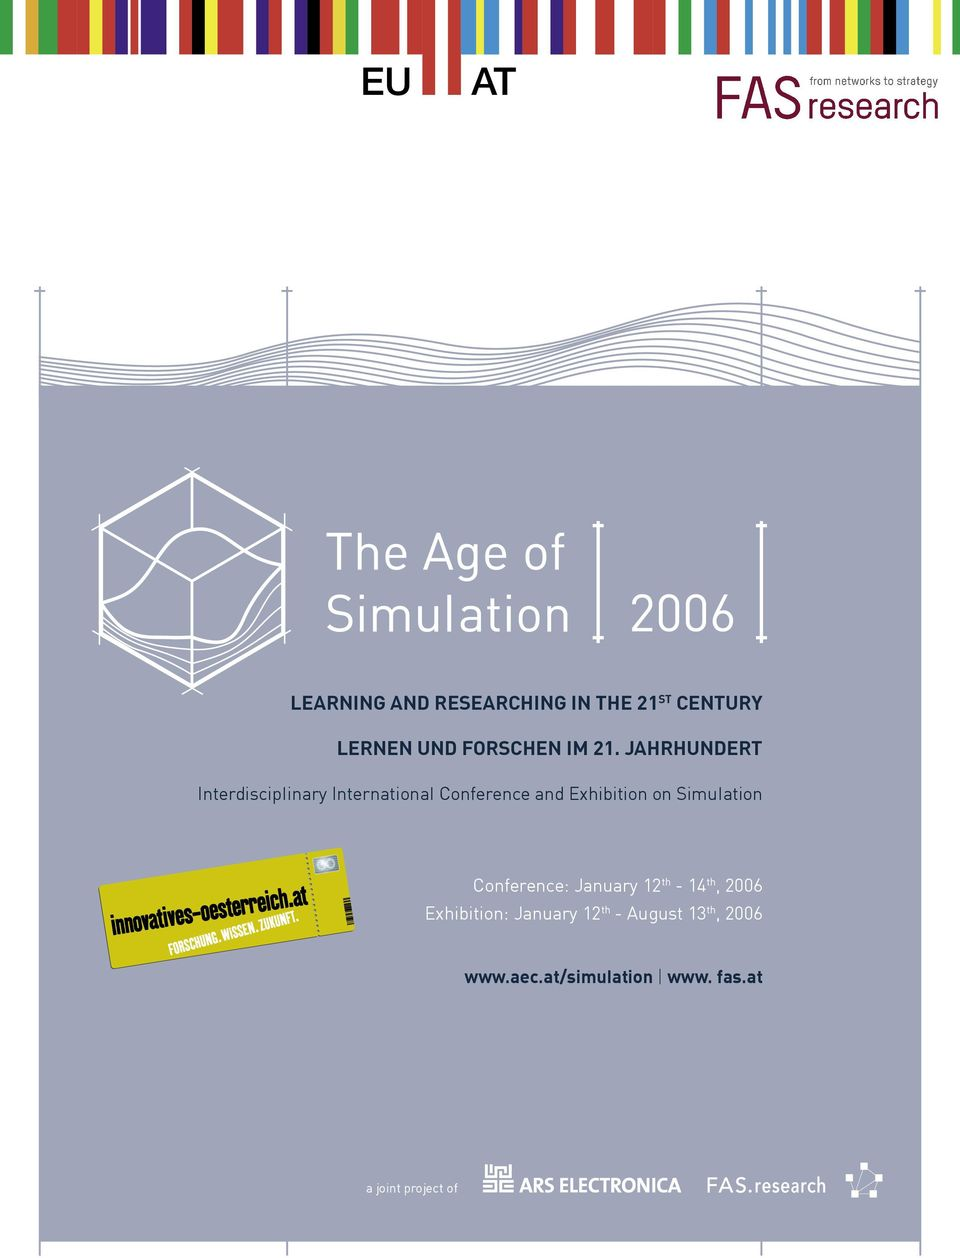 Simulation Conference: January 12 th - 14 th, 2006 Exhibition: January 12